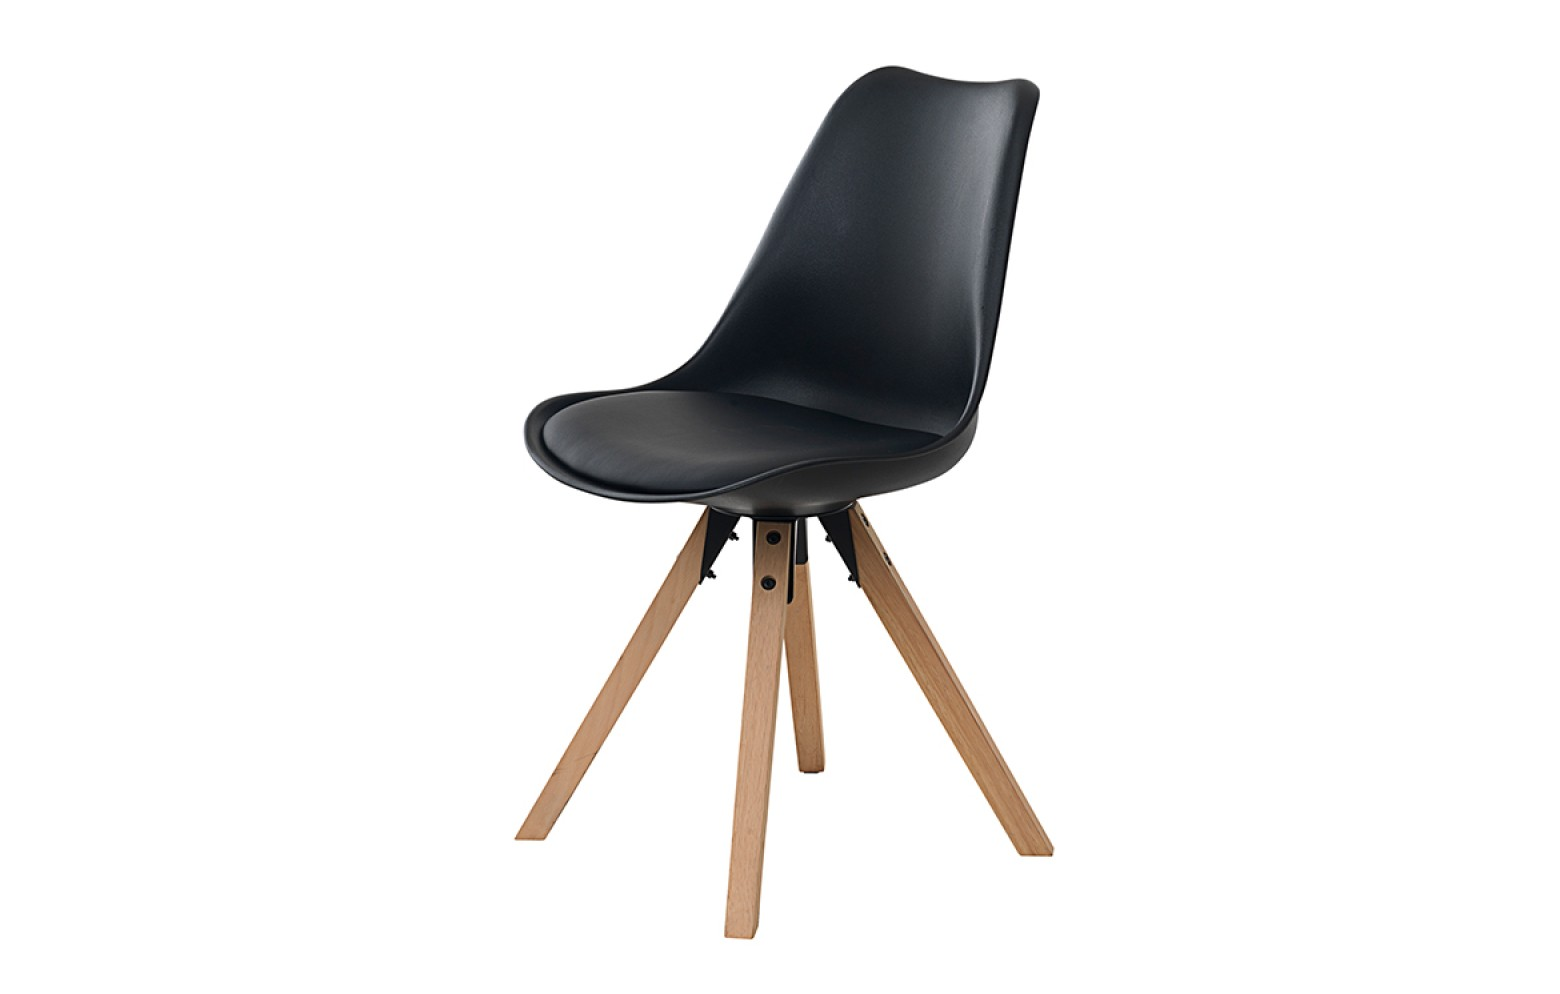 Esszimmerstühle Who's Perfect Barrie Wood Black Stuhl Stühle Bänke Online Outlet Who S